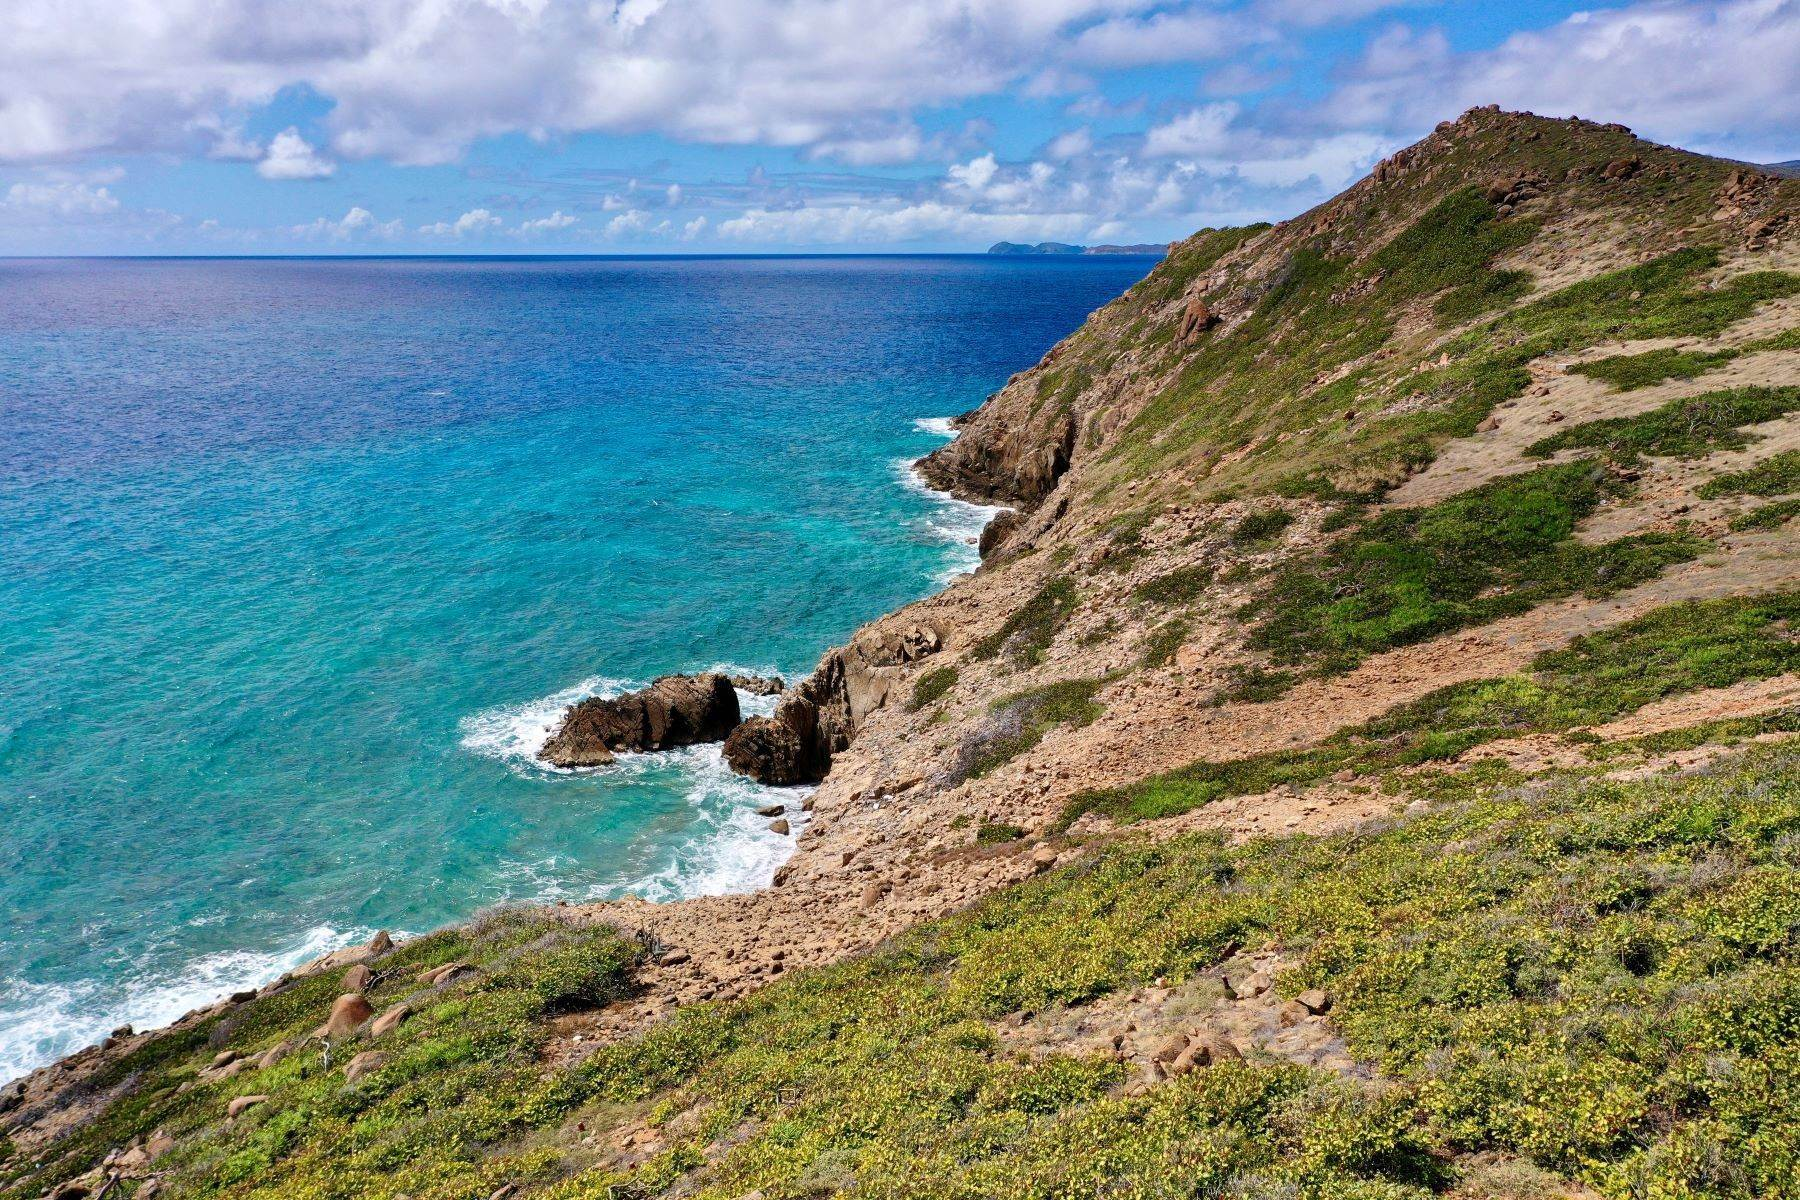 Terreno para Venda às Oil Nut Bay, Virgin Gorda Ilhas Virgens Britânicas